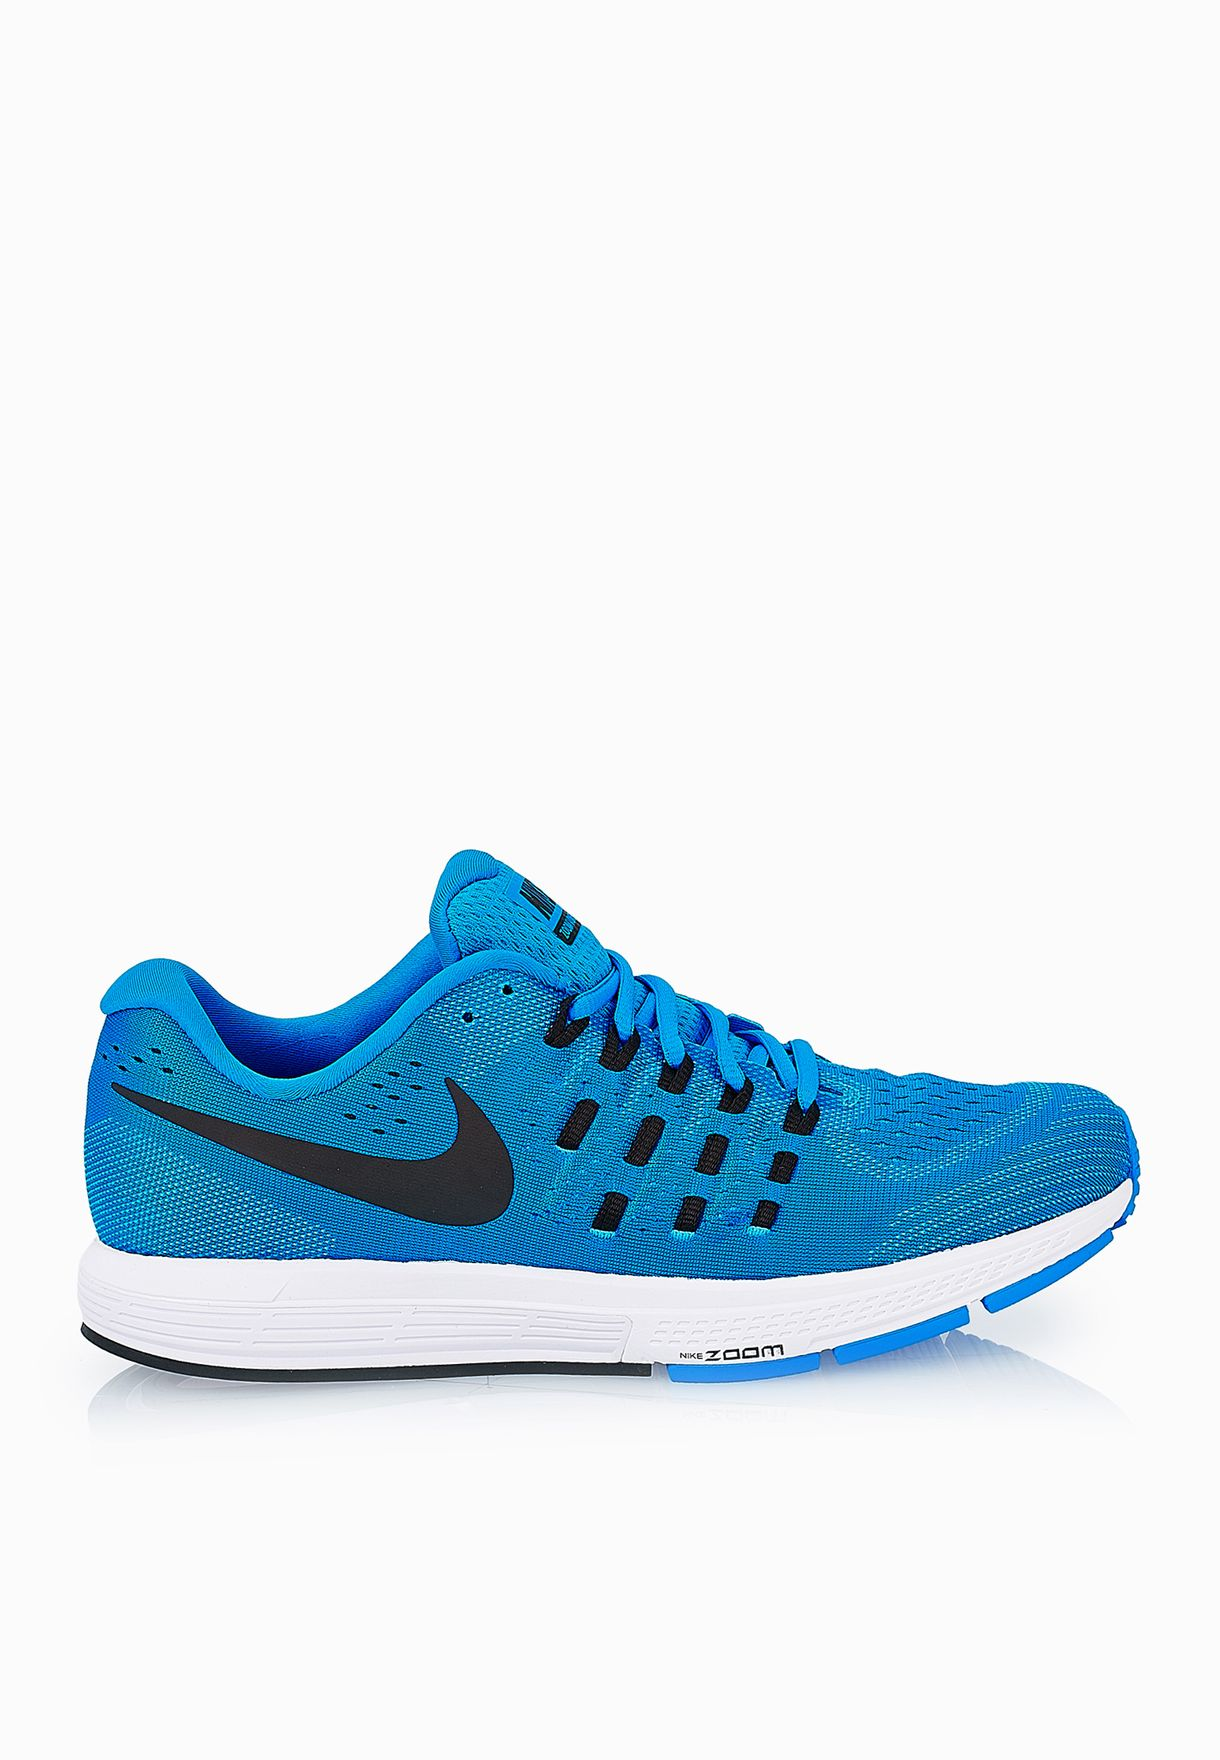 08f752132e34 Shop Nike blue Air Zoom Vomero 11 818099-400 for Men in UAE ...